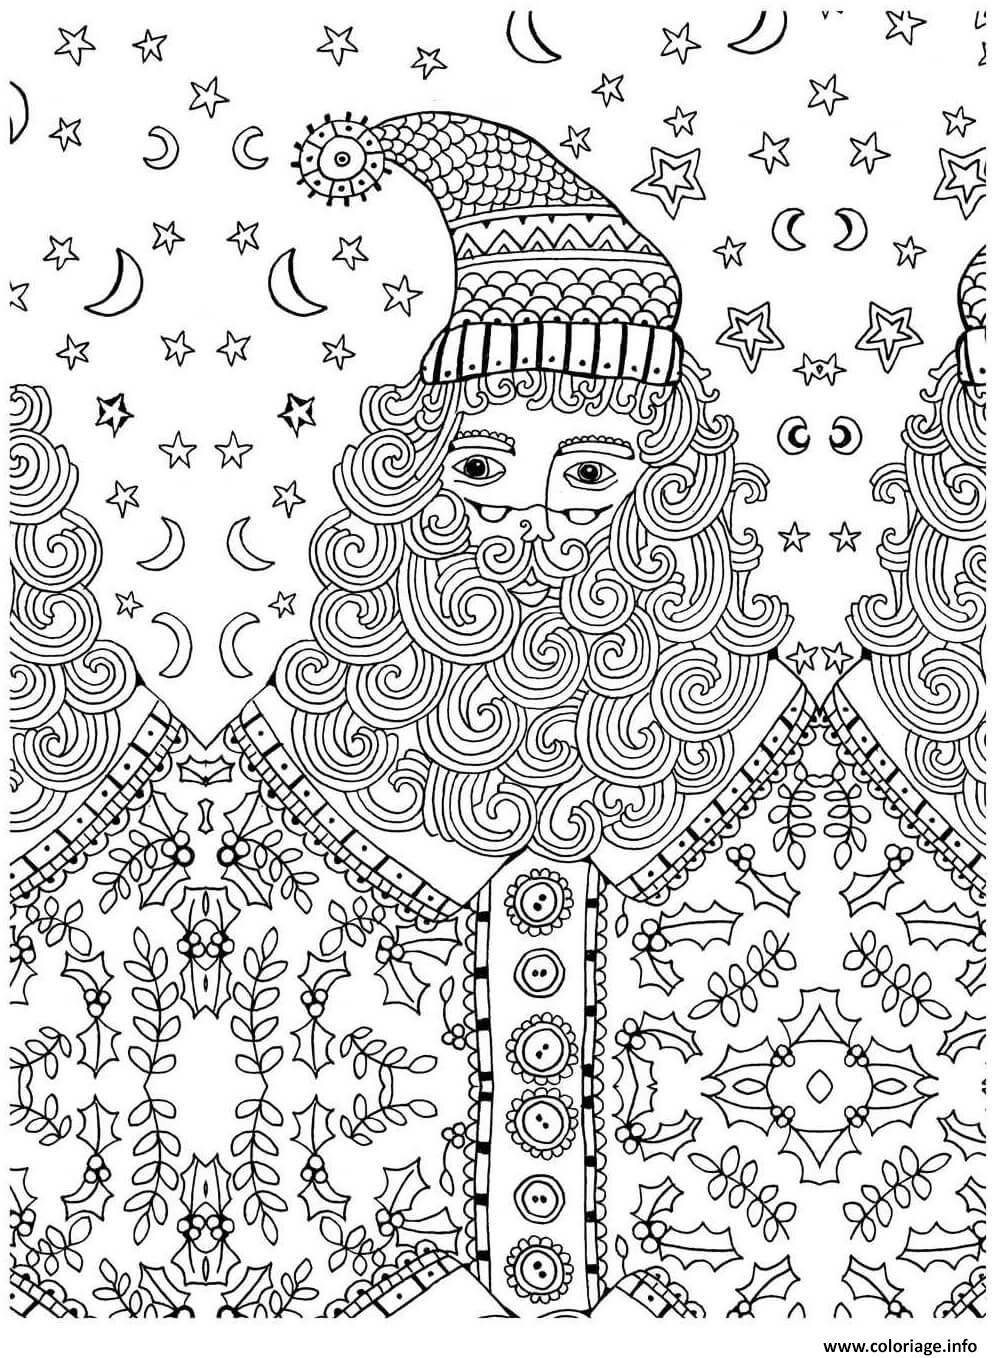 Coloriage pere noel adulte anti stress dessin - Image anti stress ...